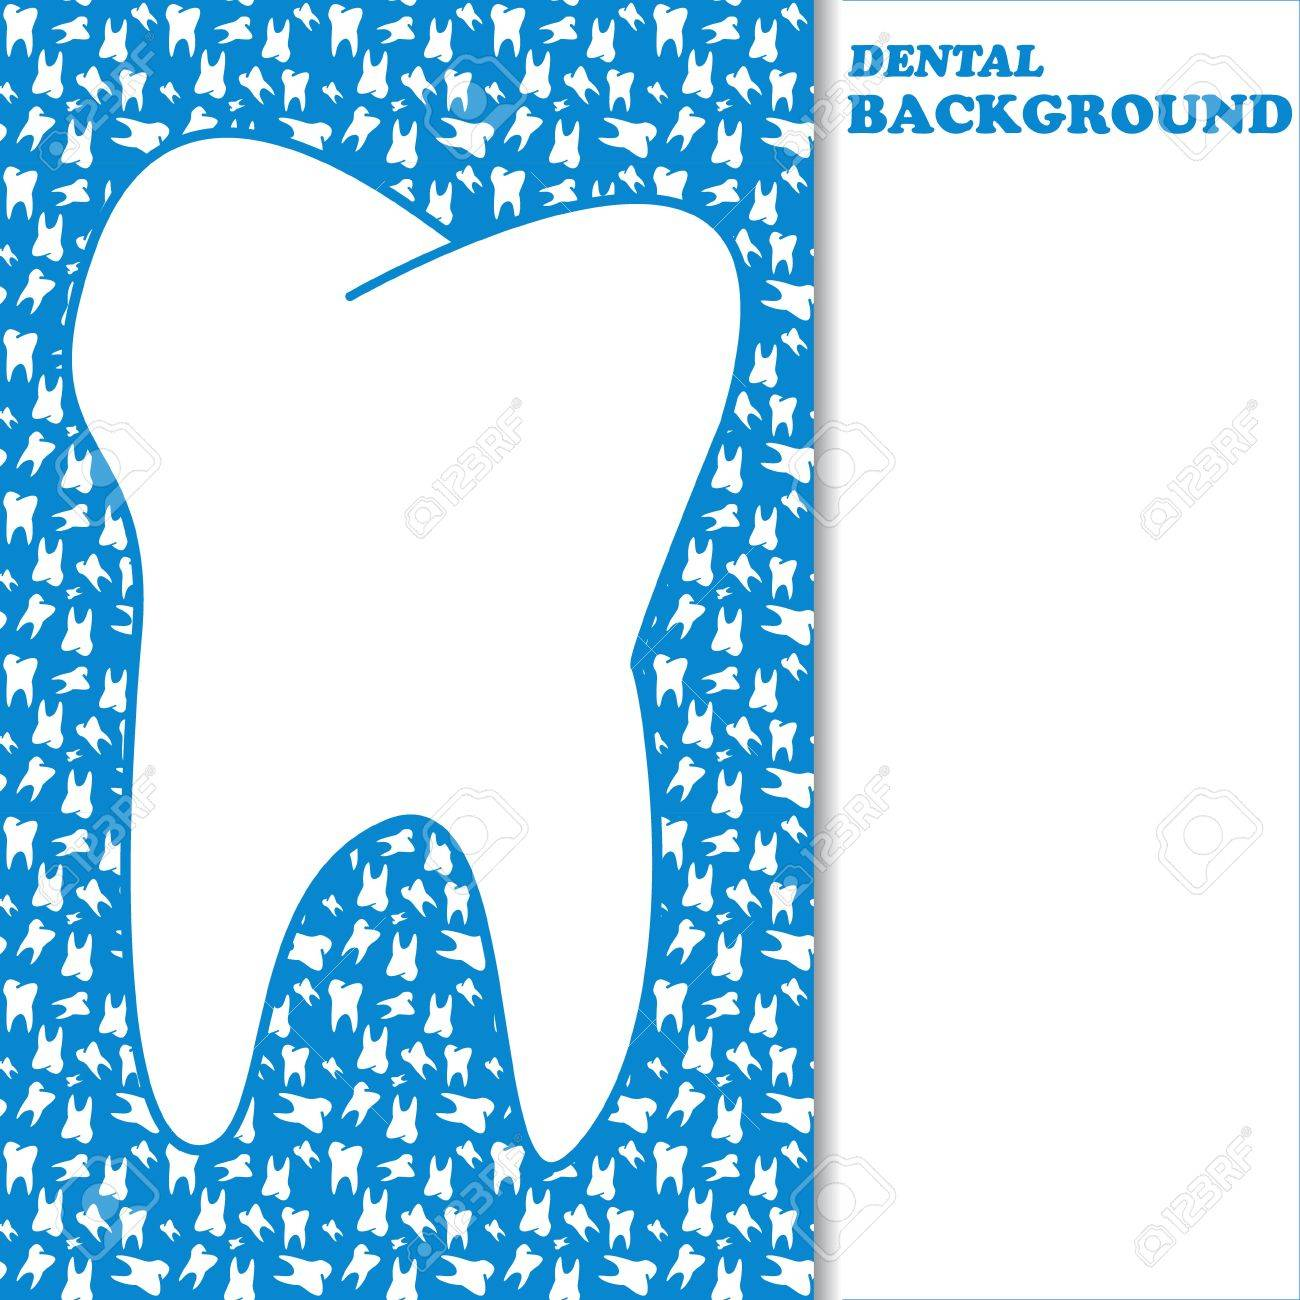 New dental background with space for text Stock Vector - 20173449